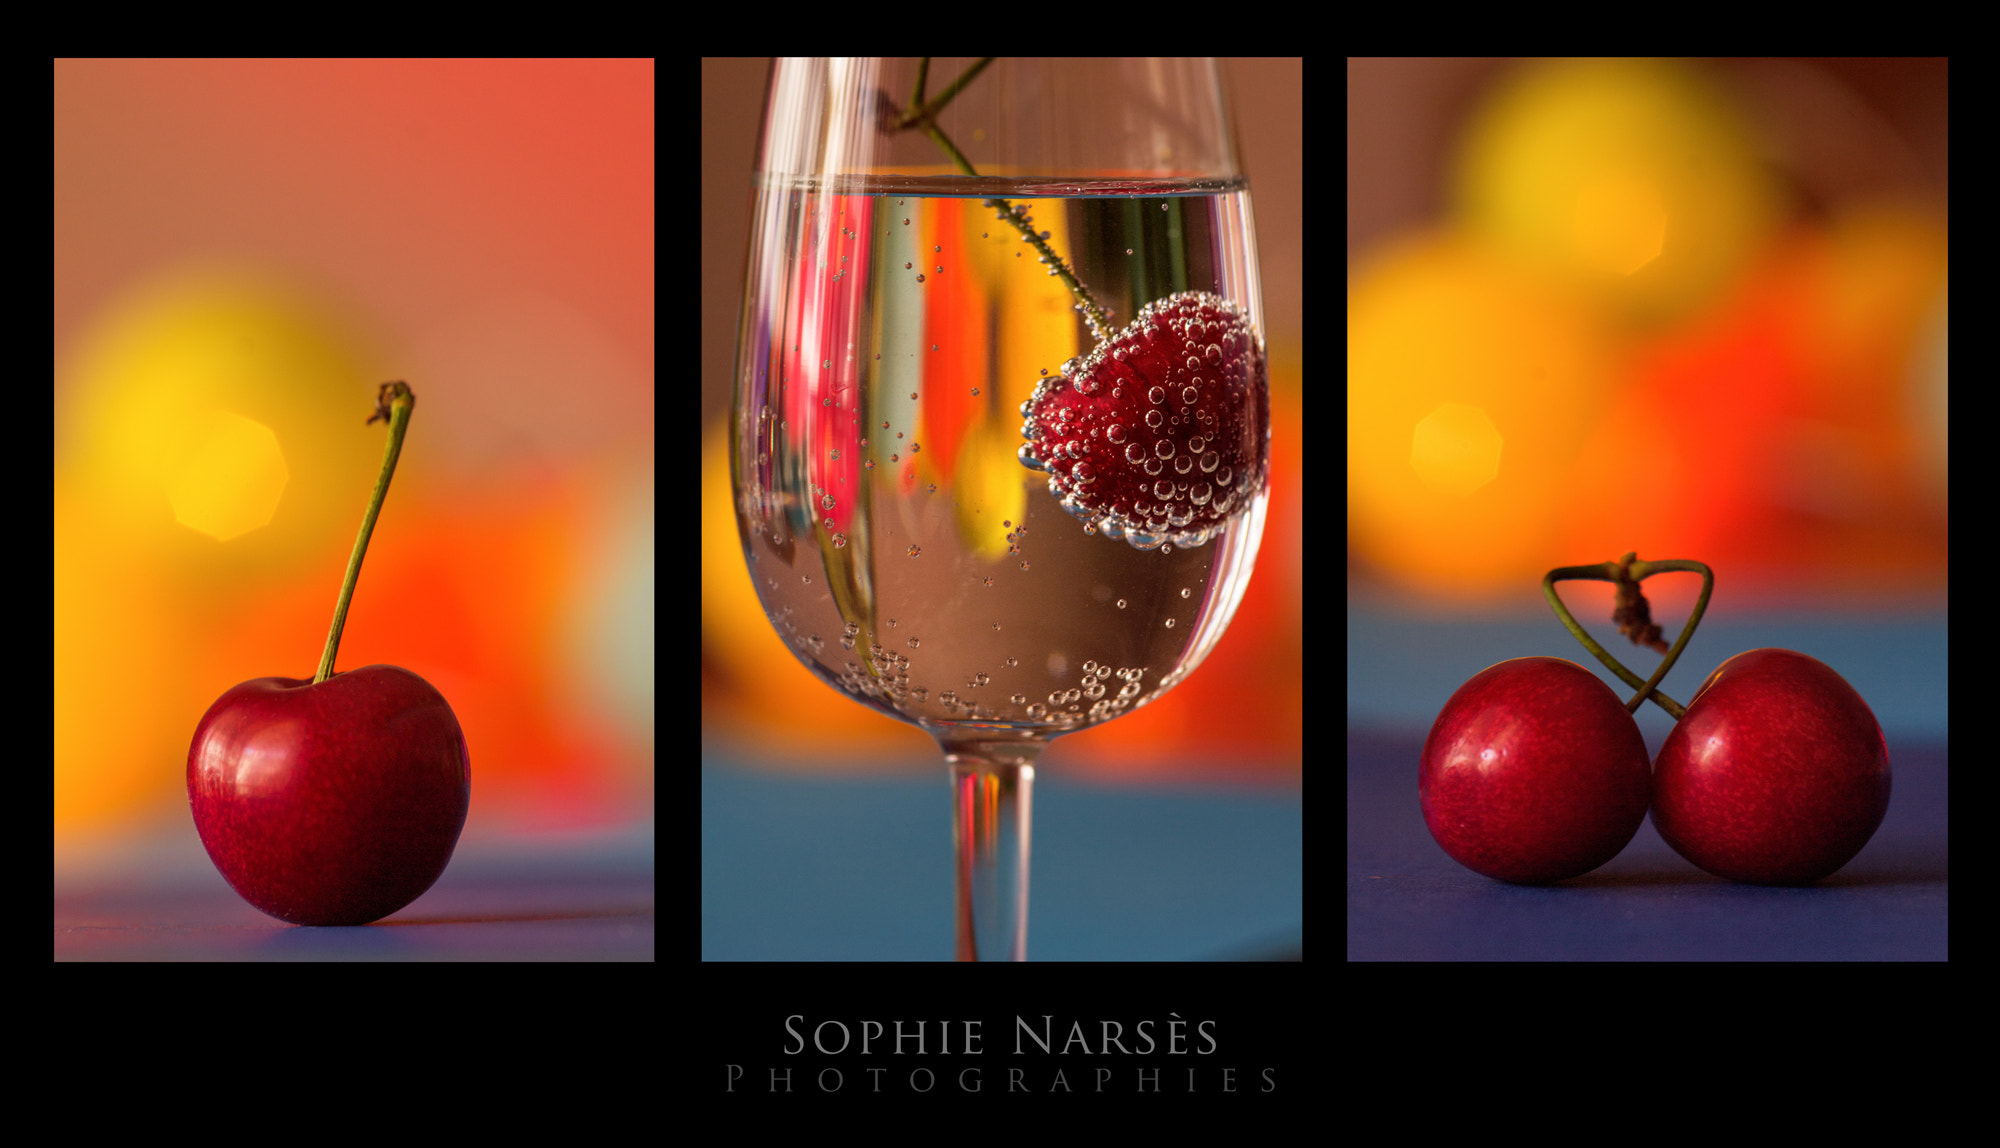 Photograph Cherries & co by Sophie Narses on 500px